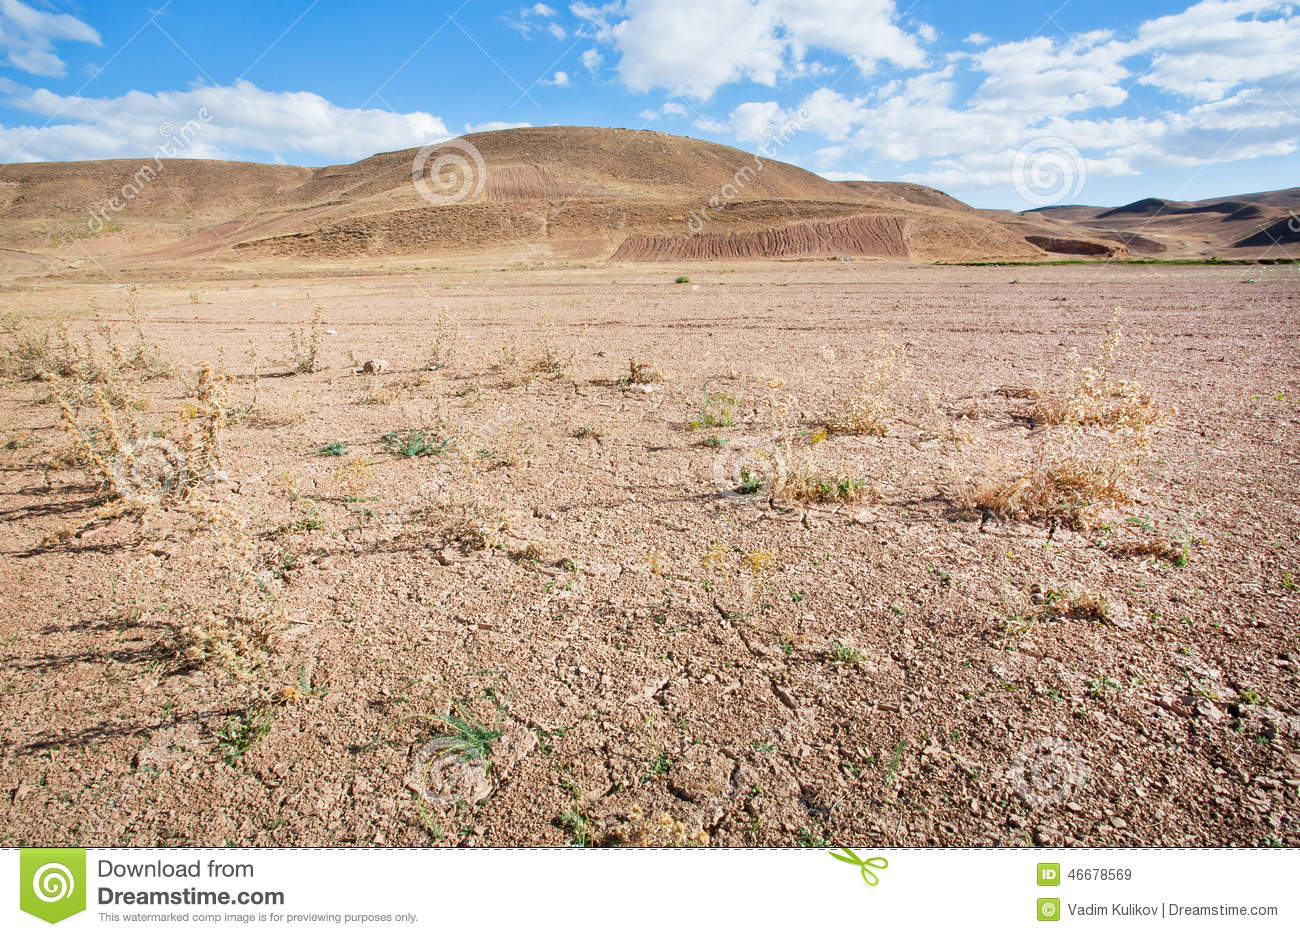 Mountains in the distance of the desert valley with dry soil under the scorching sun